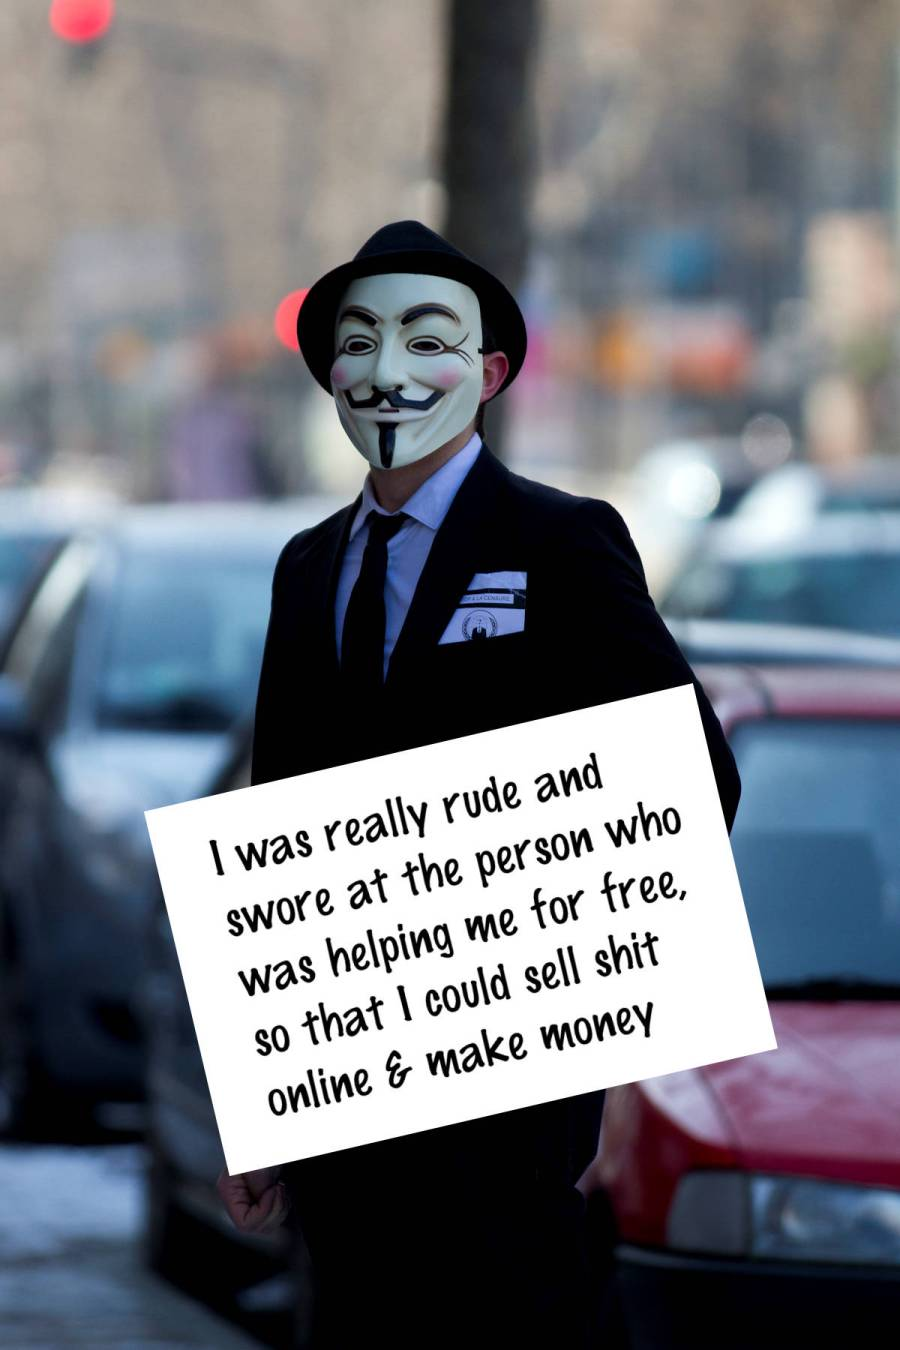 anonymous, Guy Fawkes mask, shaming sign, rude people shaming